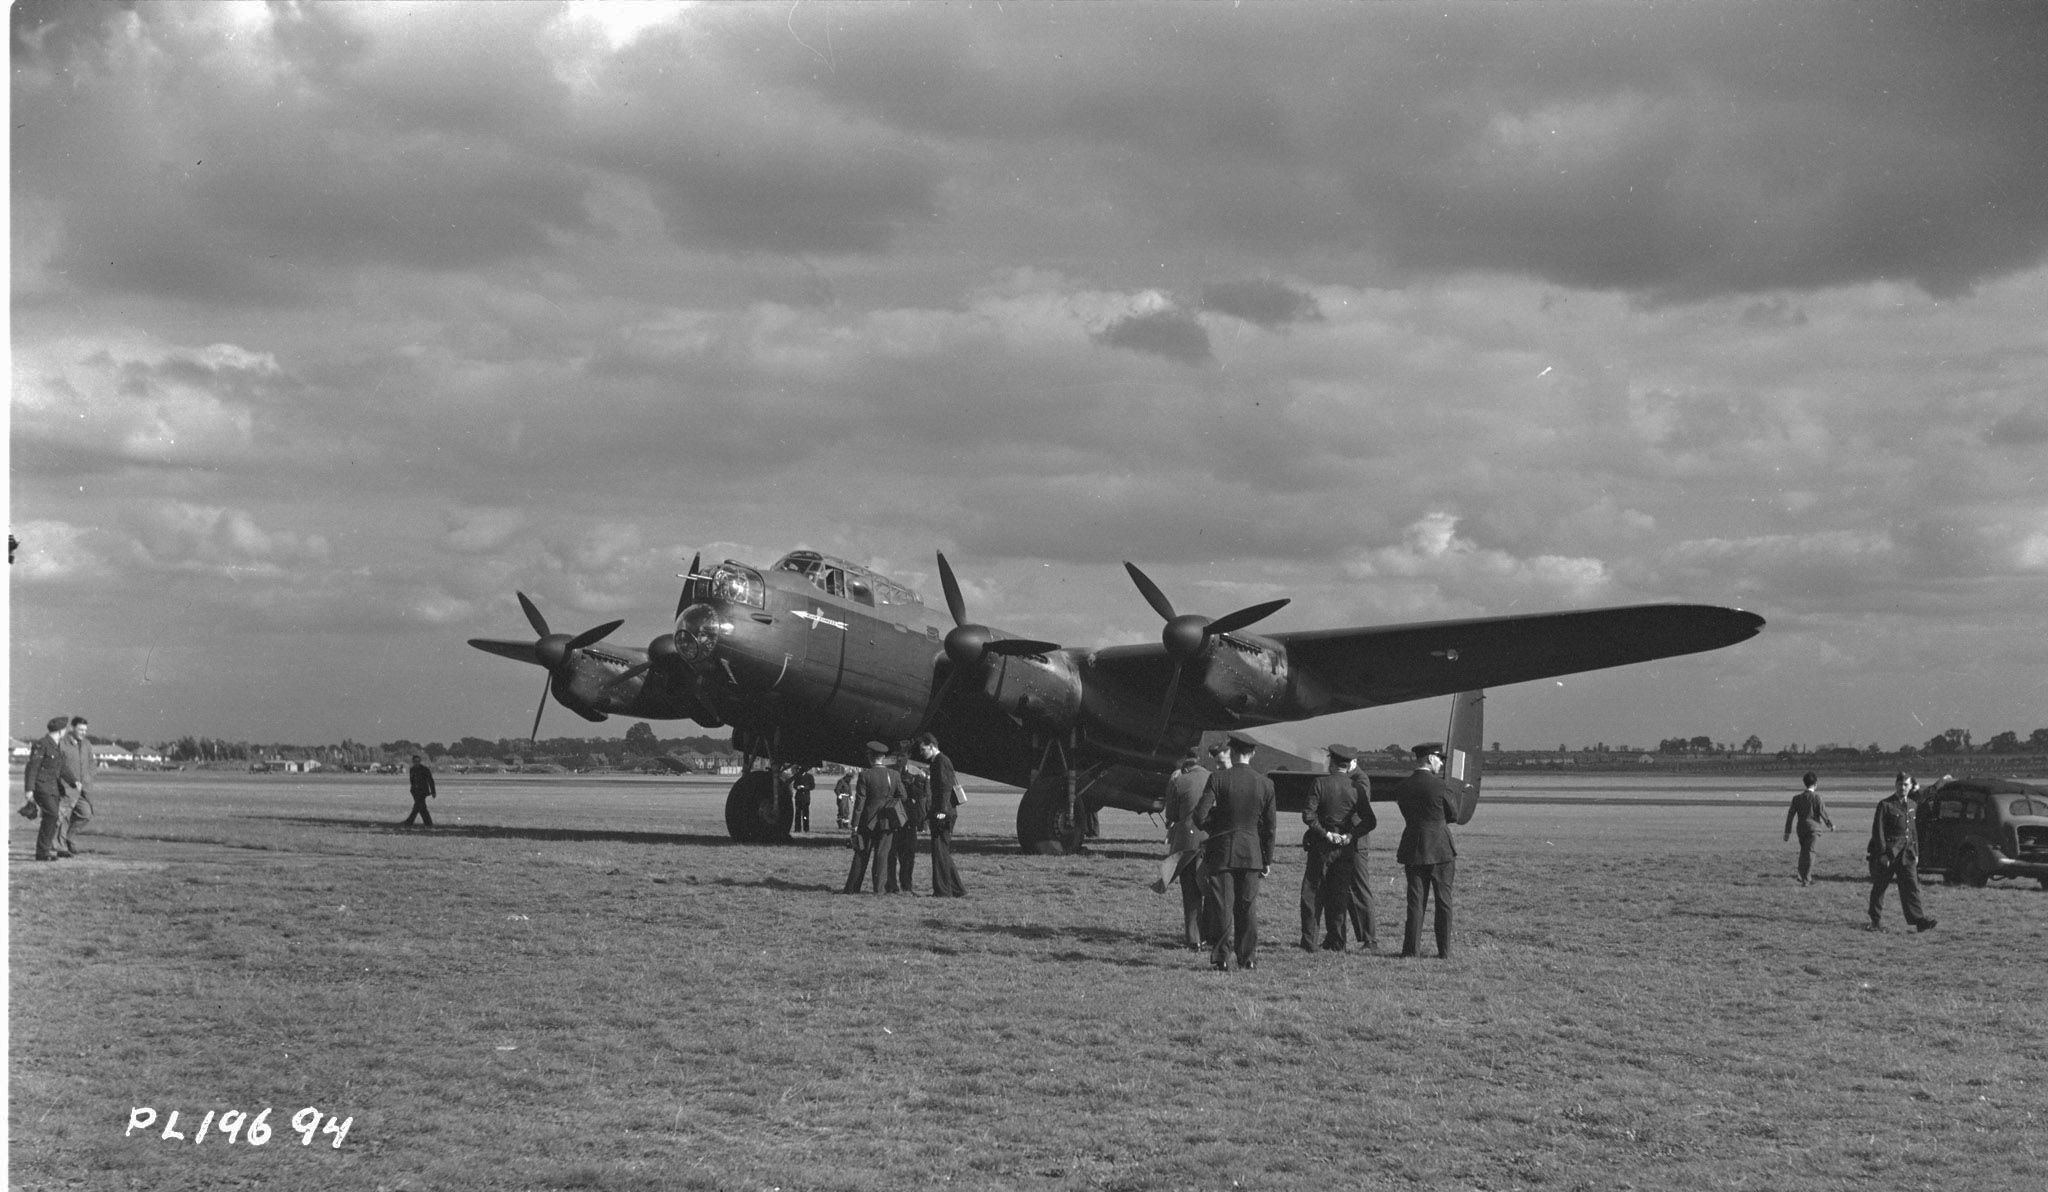 In an undated photograph, aircrew and groundcrew of the RCAF and the RAF welcome the first Canadian built-Lancaster bomber as it taxies off the runway at a London drome. PHOTO: DND Archives, PL-19694